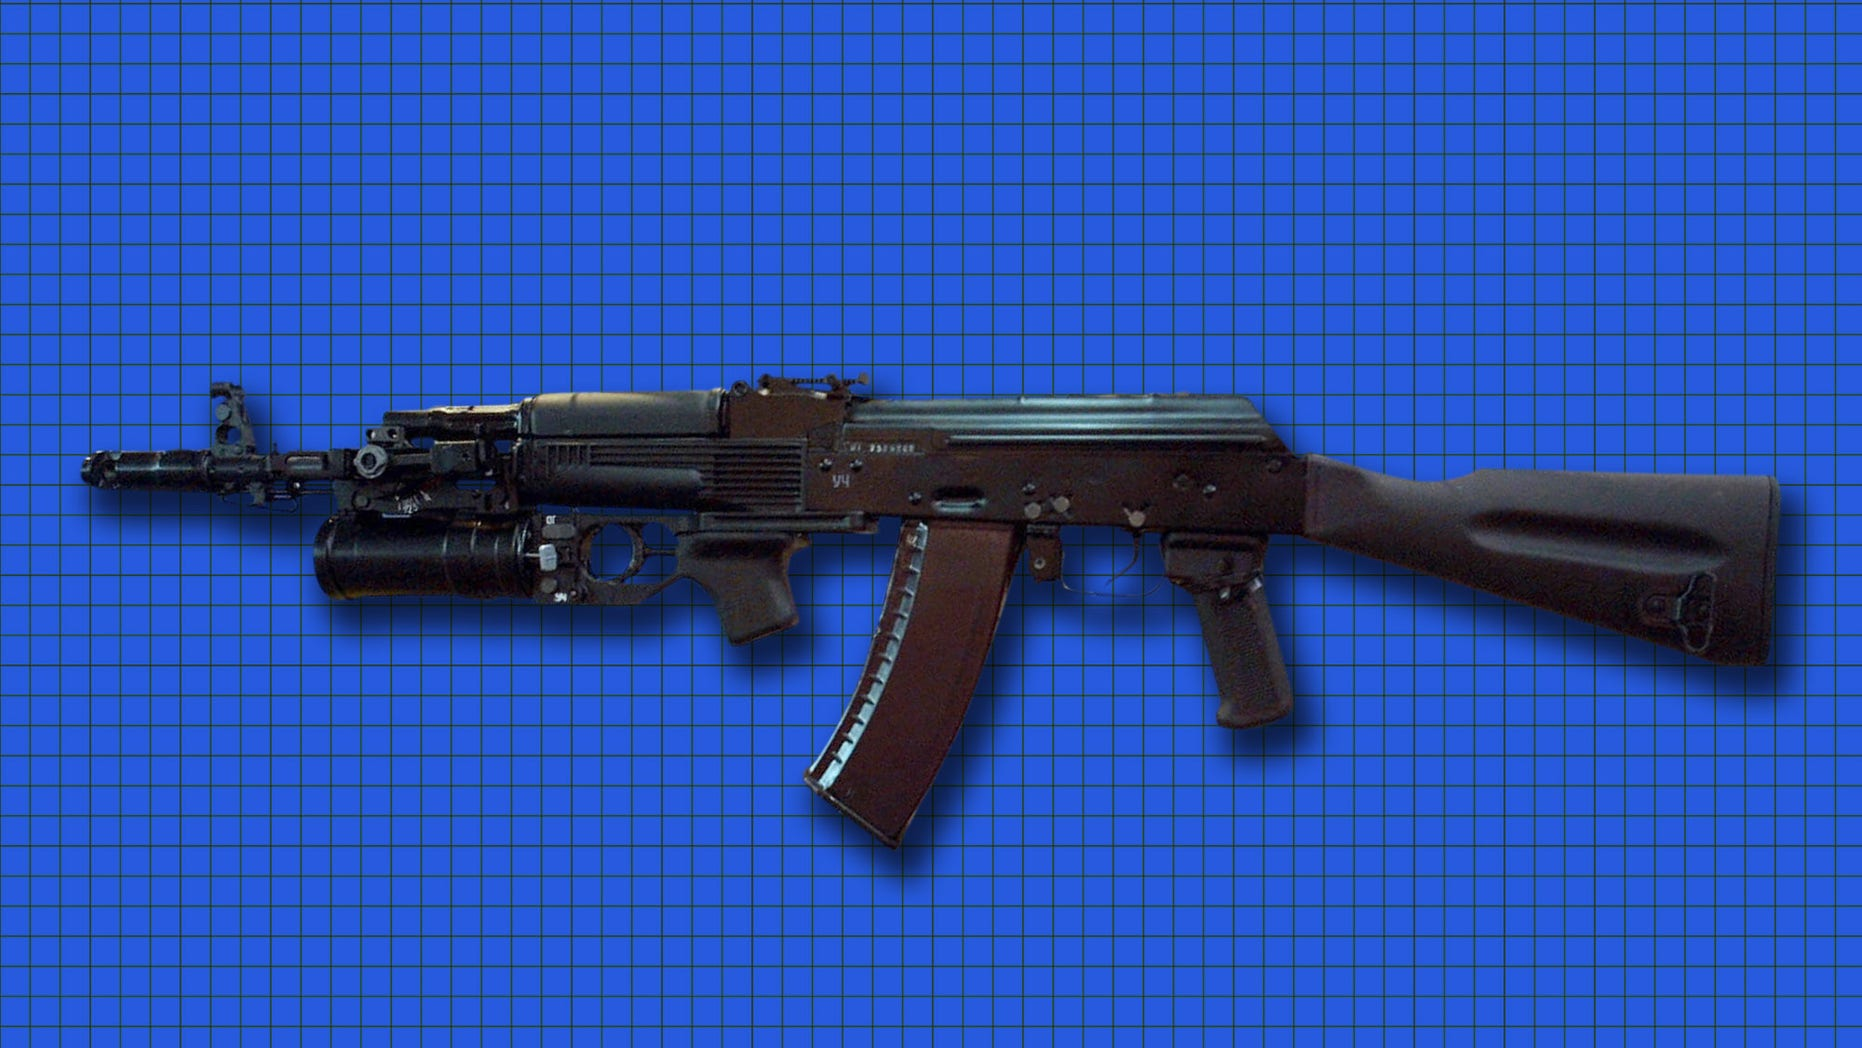 Twenty-six AK-74 assault rifles, above, and one Dragunov sniper rifle were stolen from a supply warehouse at Fort Irwin in San Bernardino County.